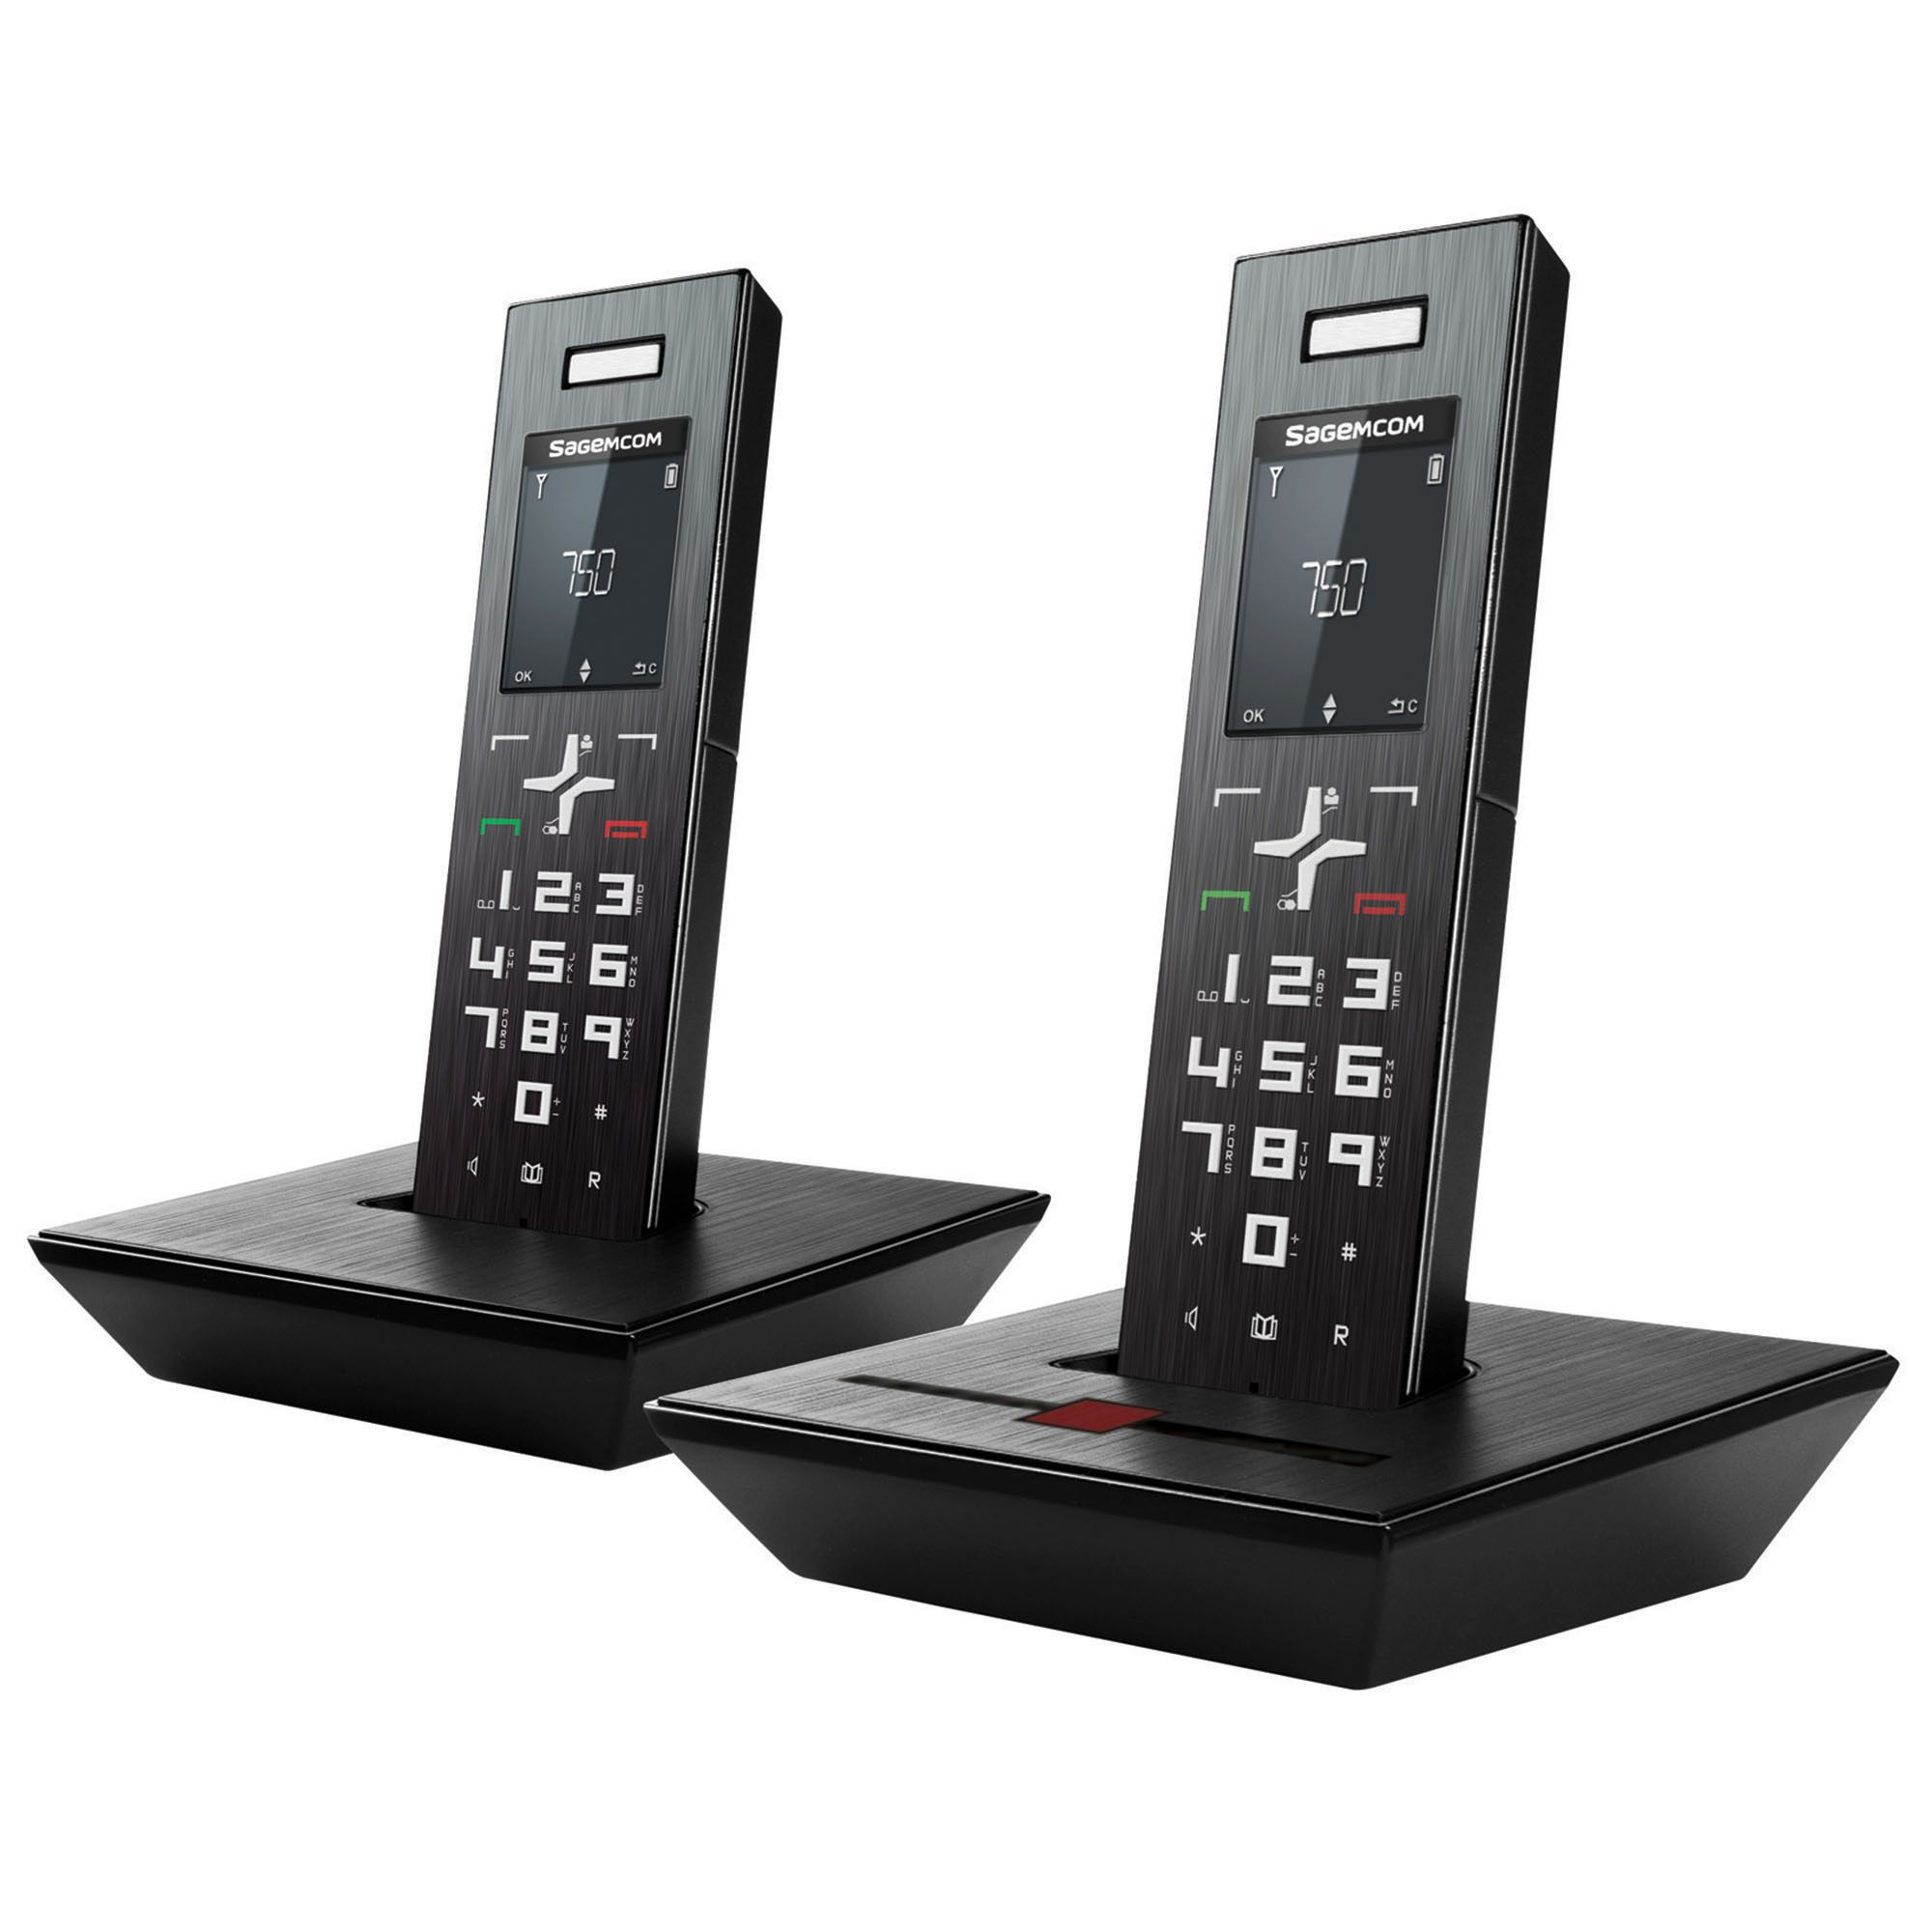 Sagemcom Cordless Digital Telephone With Answering Machine - Twin Handset